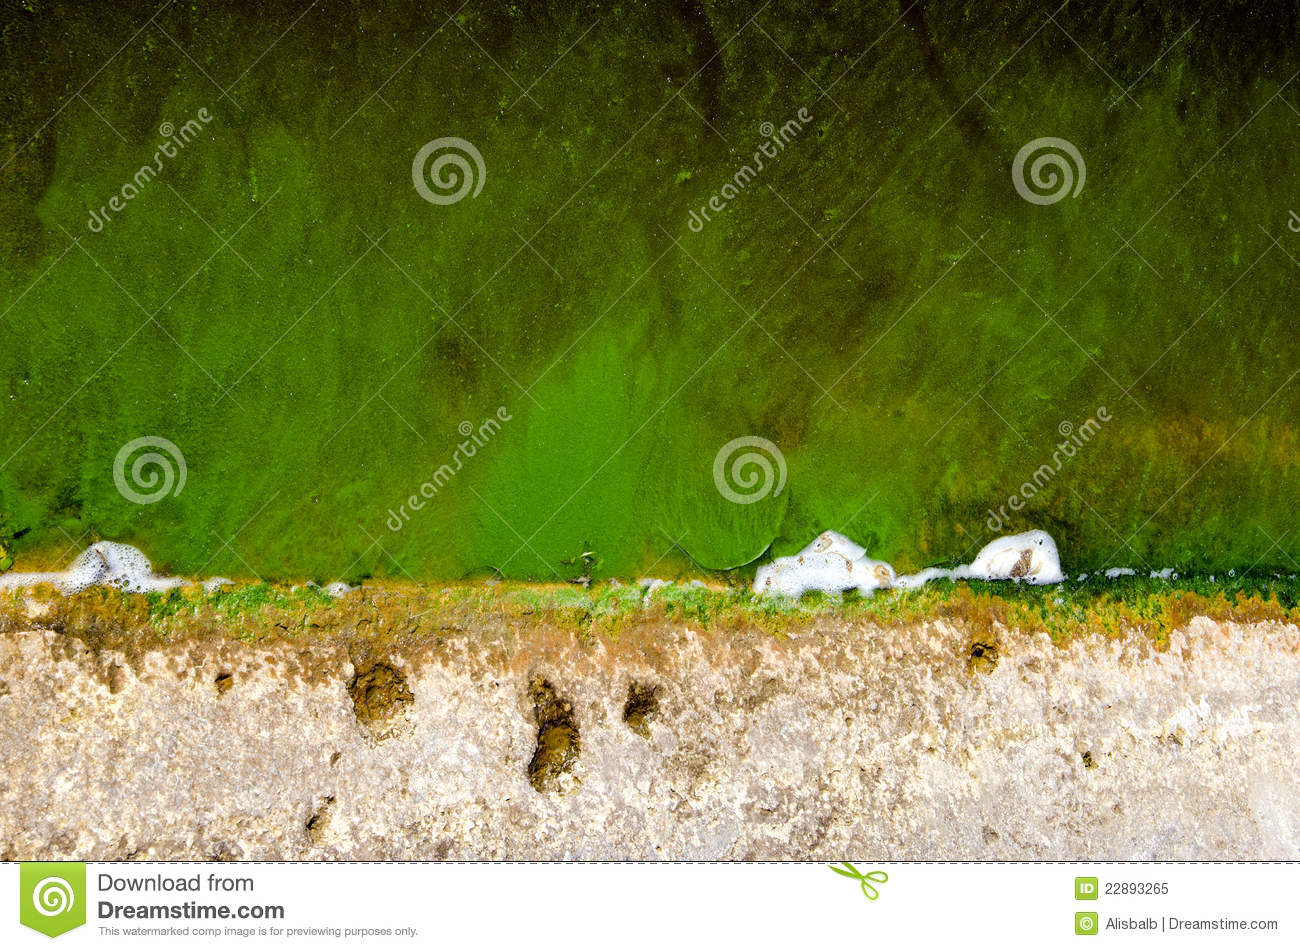 Green pond water with algae background royalty free stock for Green pond water